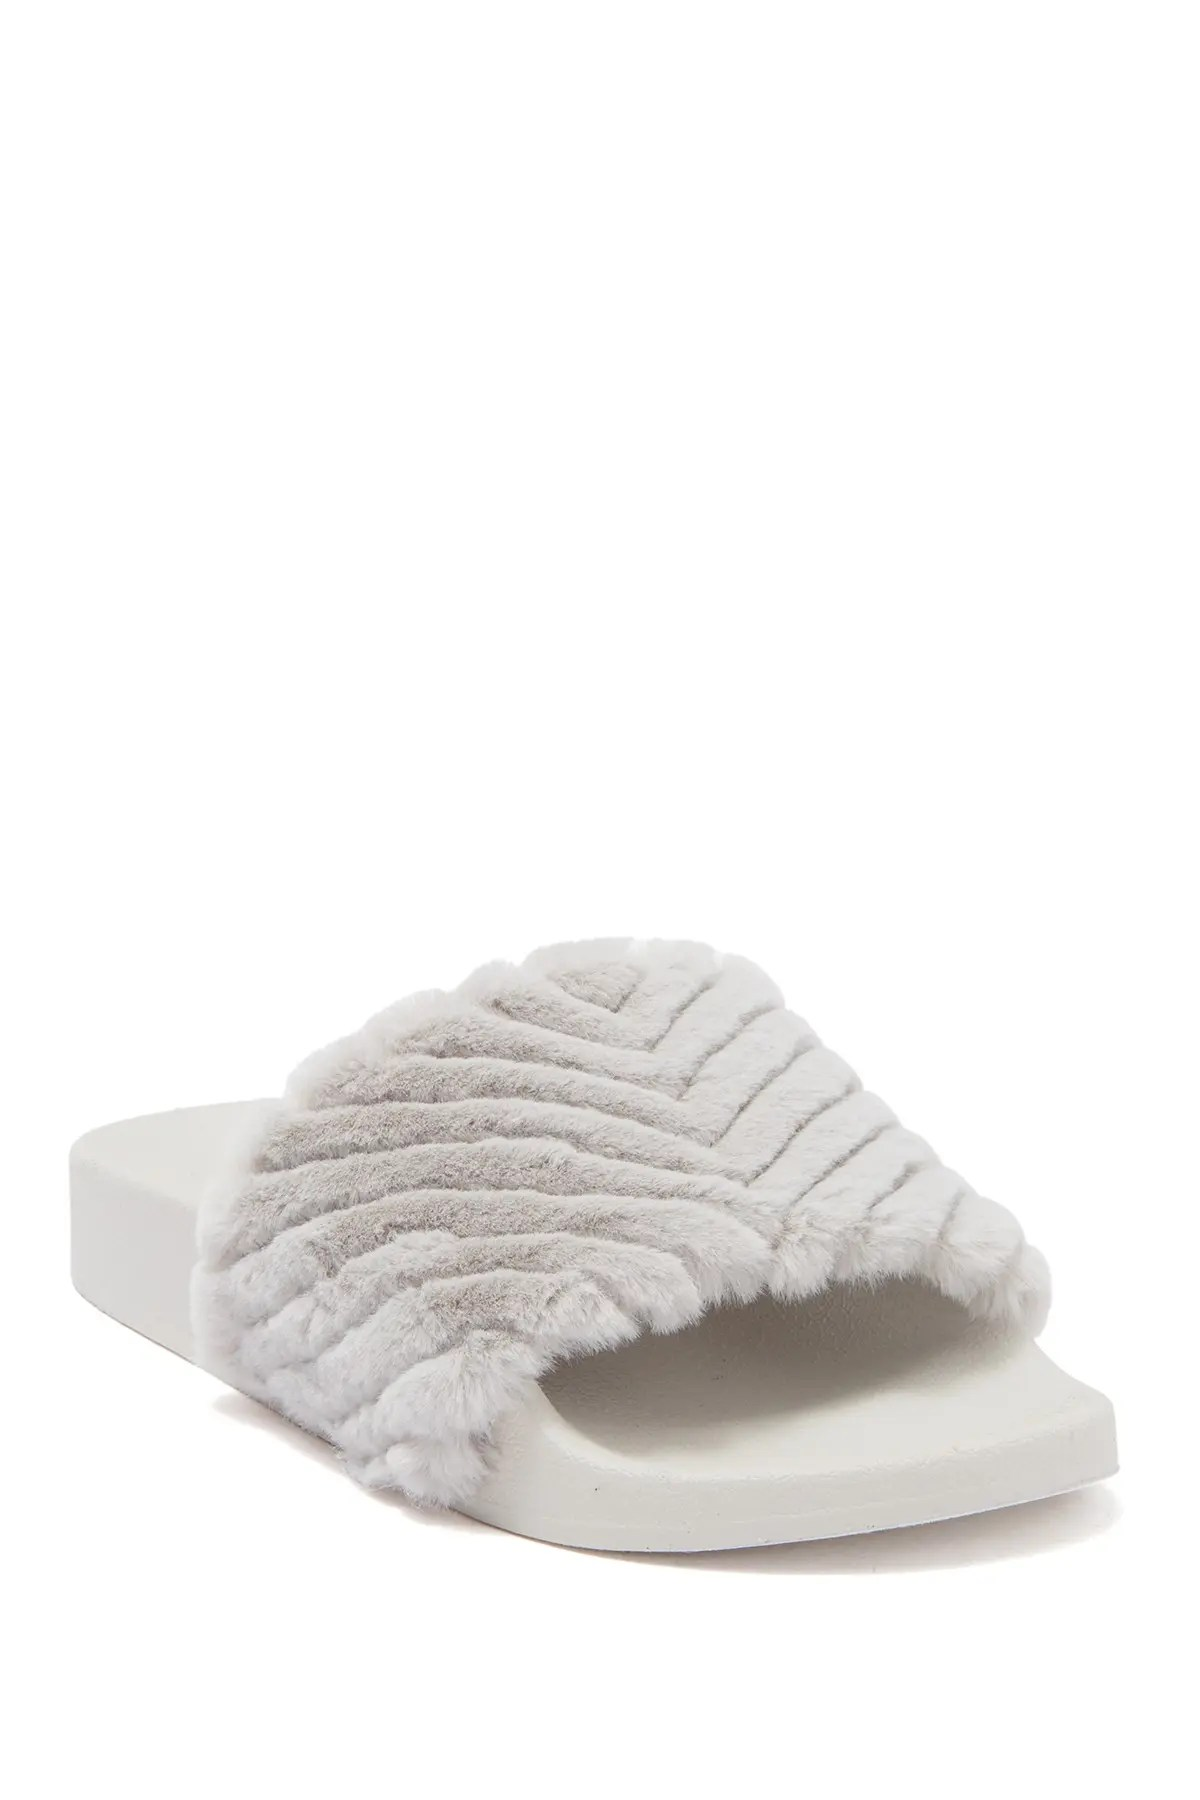 sandals for women clearance nordstrom